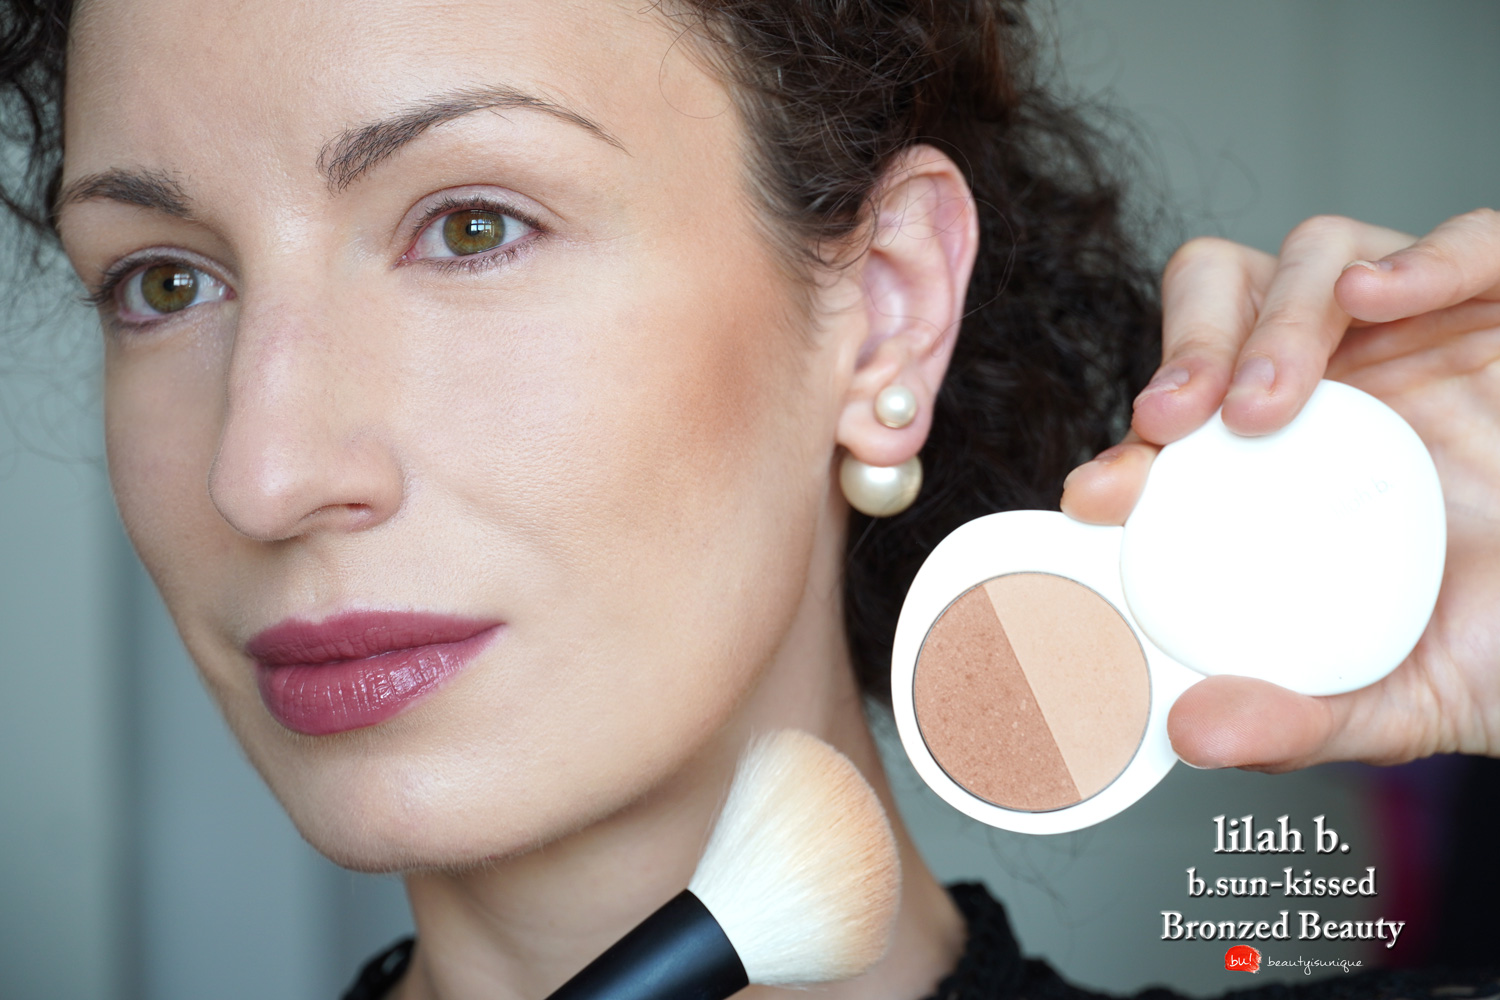 lilah-b-sun-kissed-bronzed-beauty-swatches